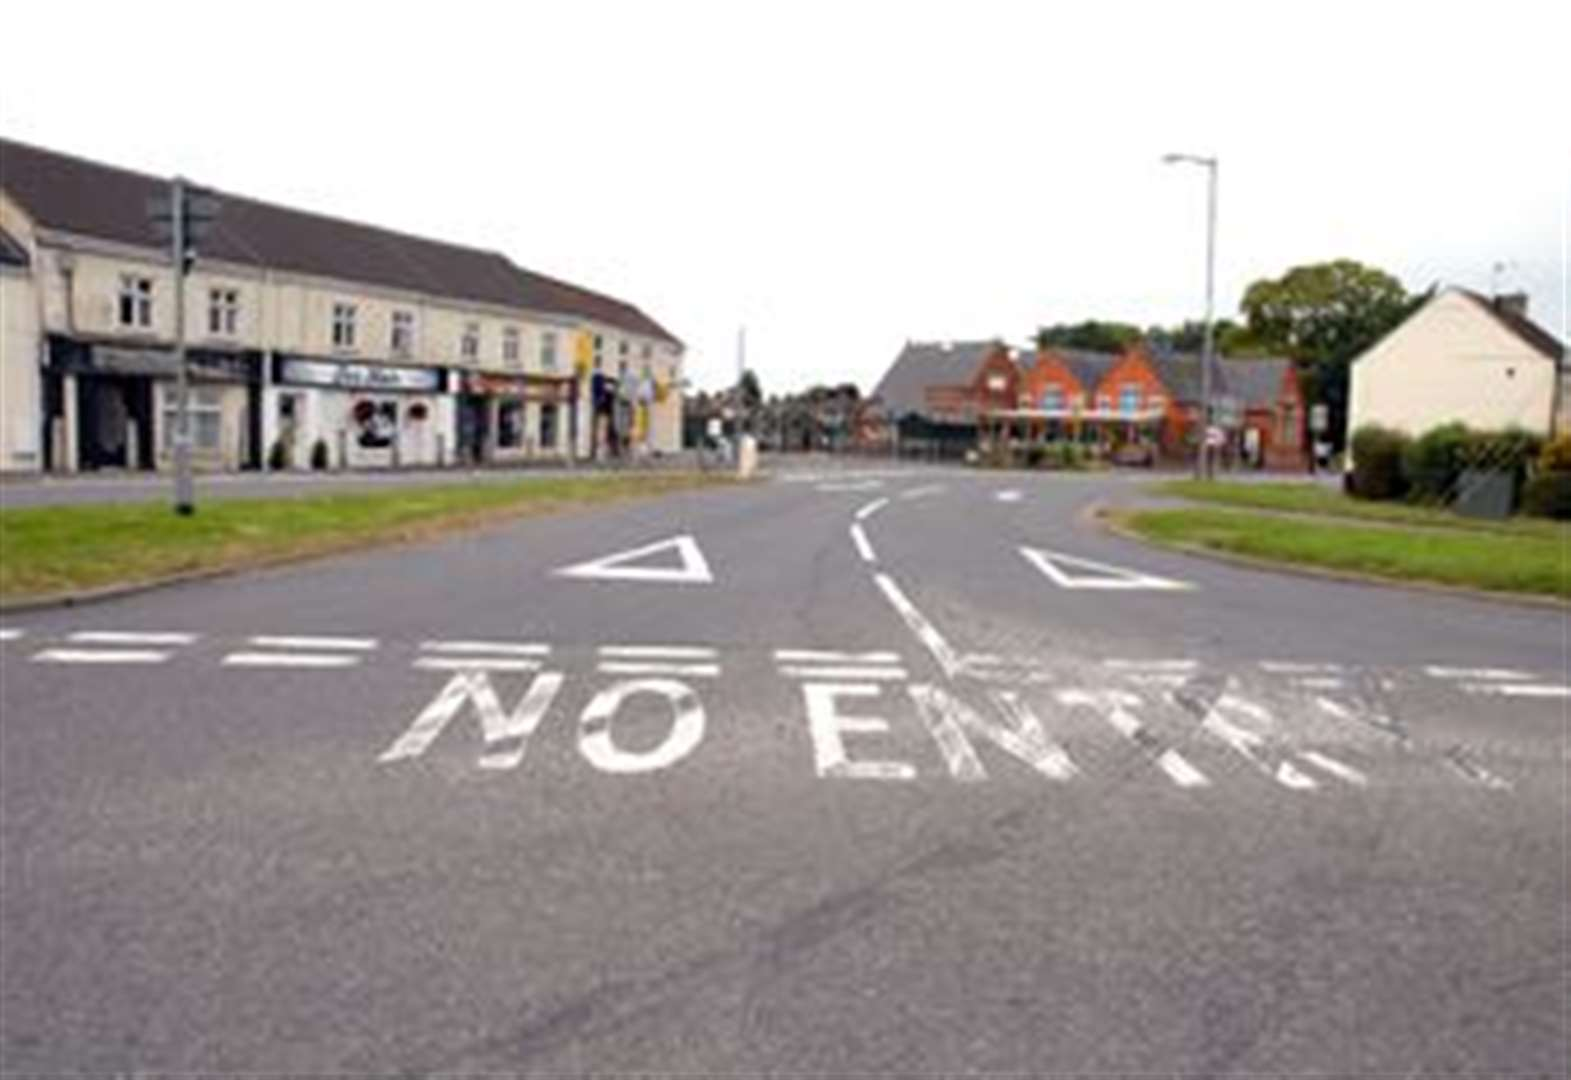 Gosberton danger junction: Will new 'No Entry' sign stop near misses?